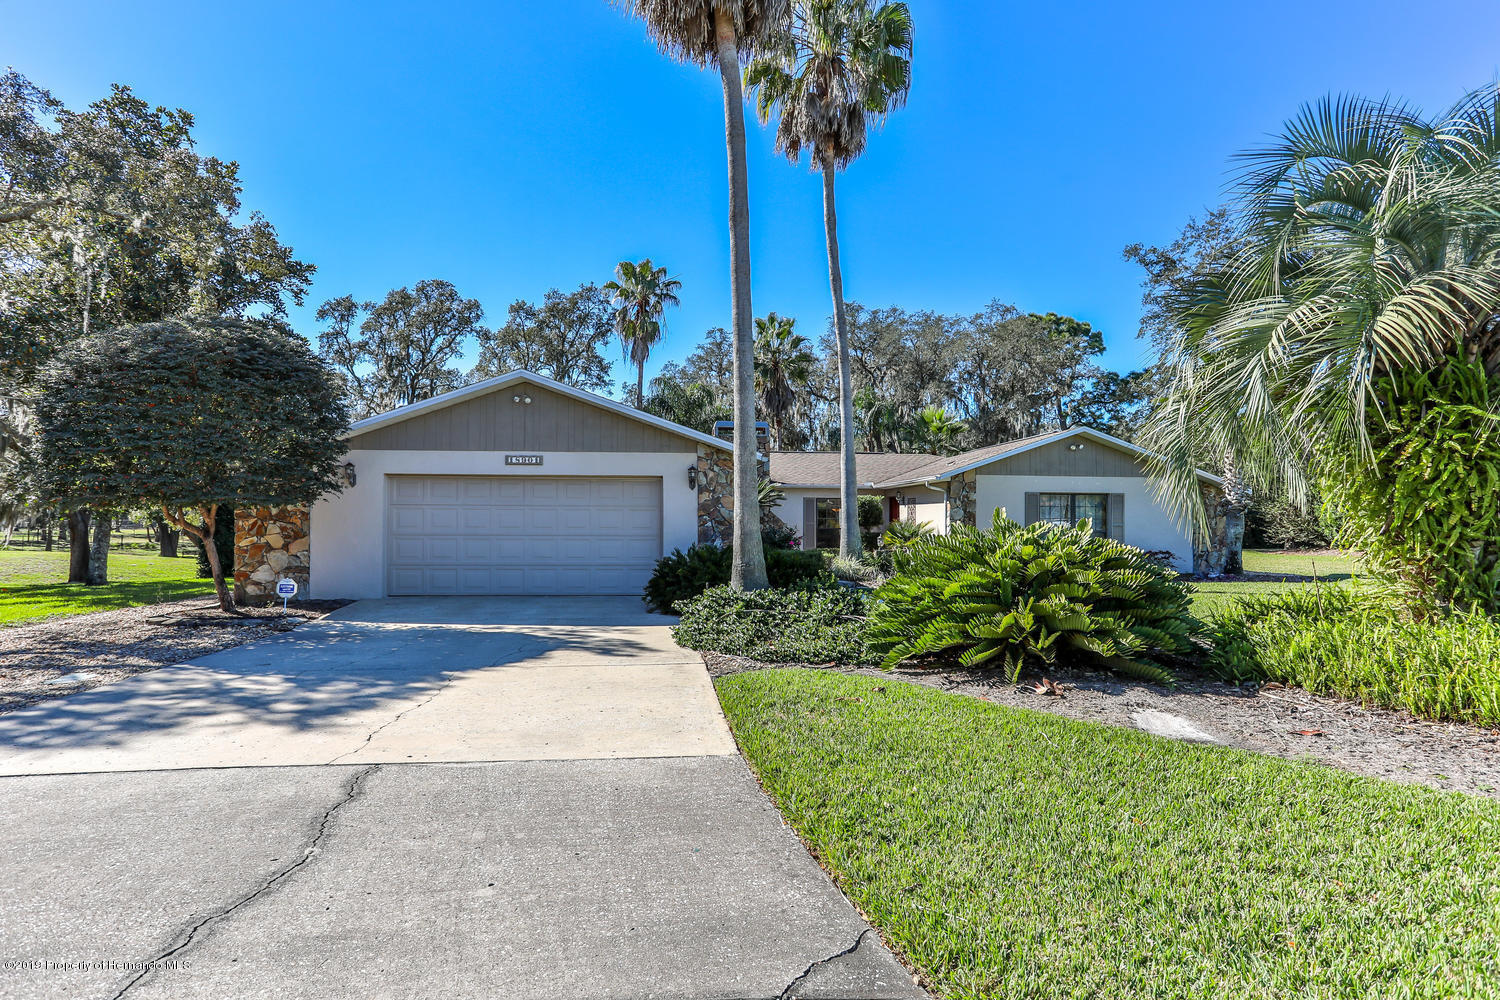 18901 Lansford Drive, Hudson, Florida 34667, 3 Bedrooms Bedrooms, ,2 BathroomsBathrooms,Residential,For Sale,Lansford,2203243